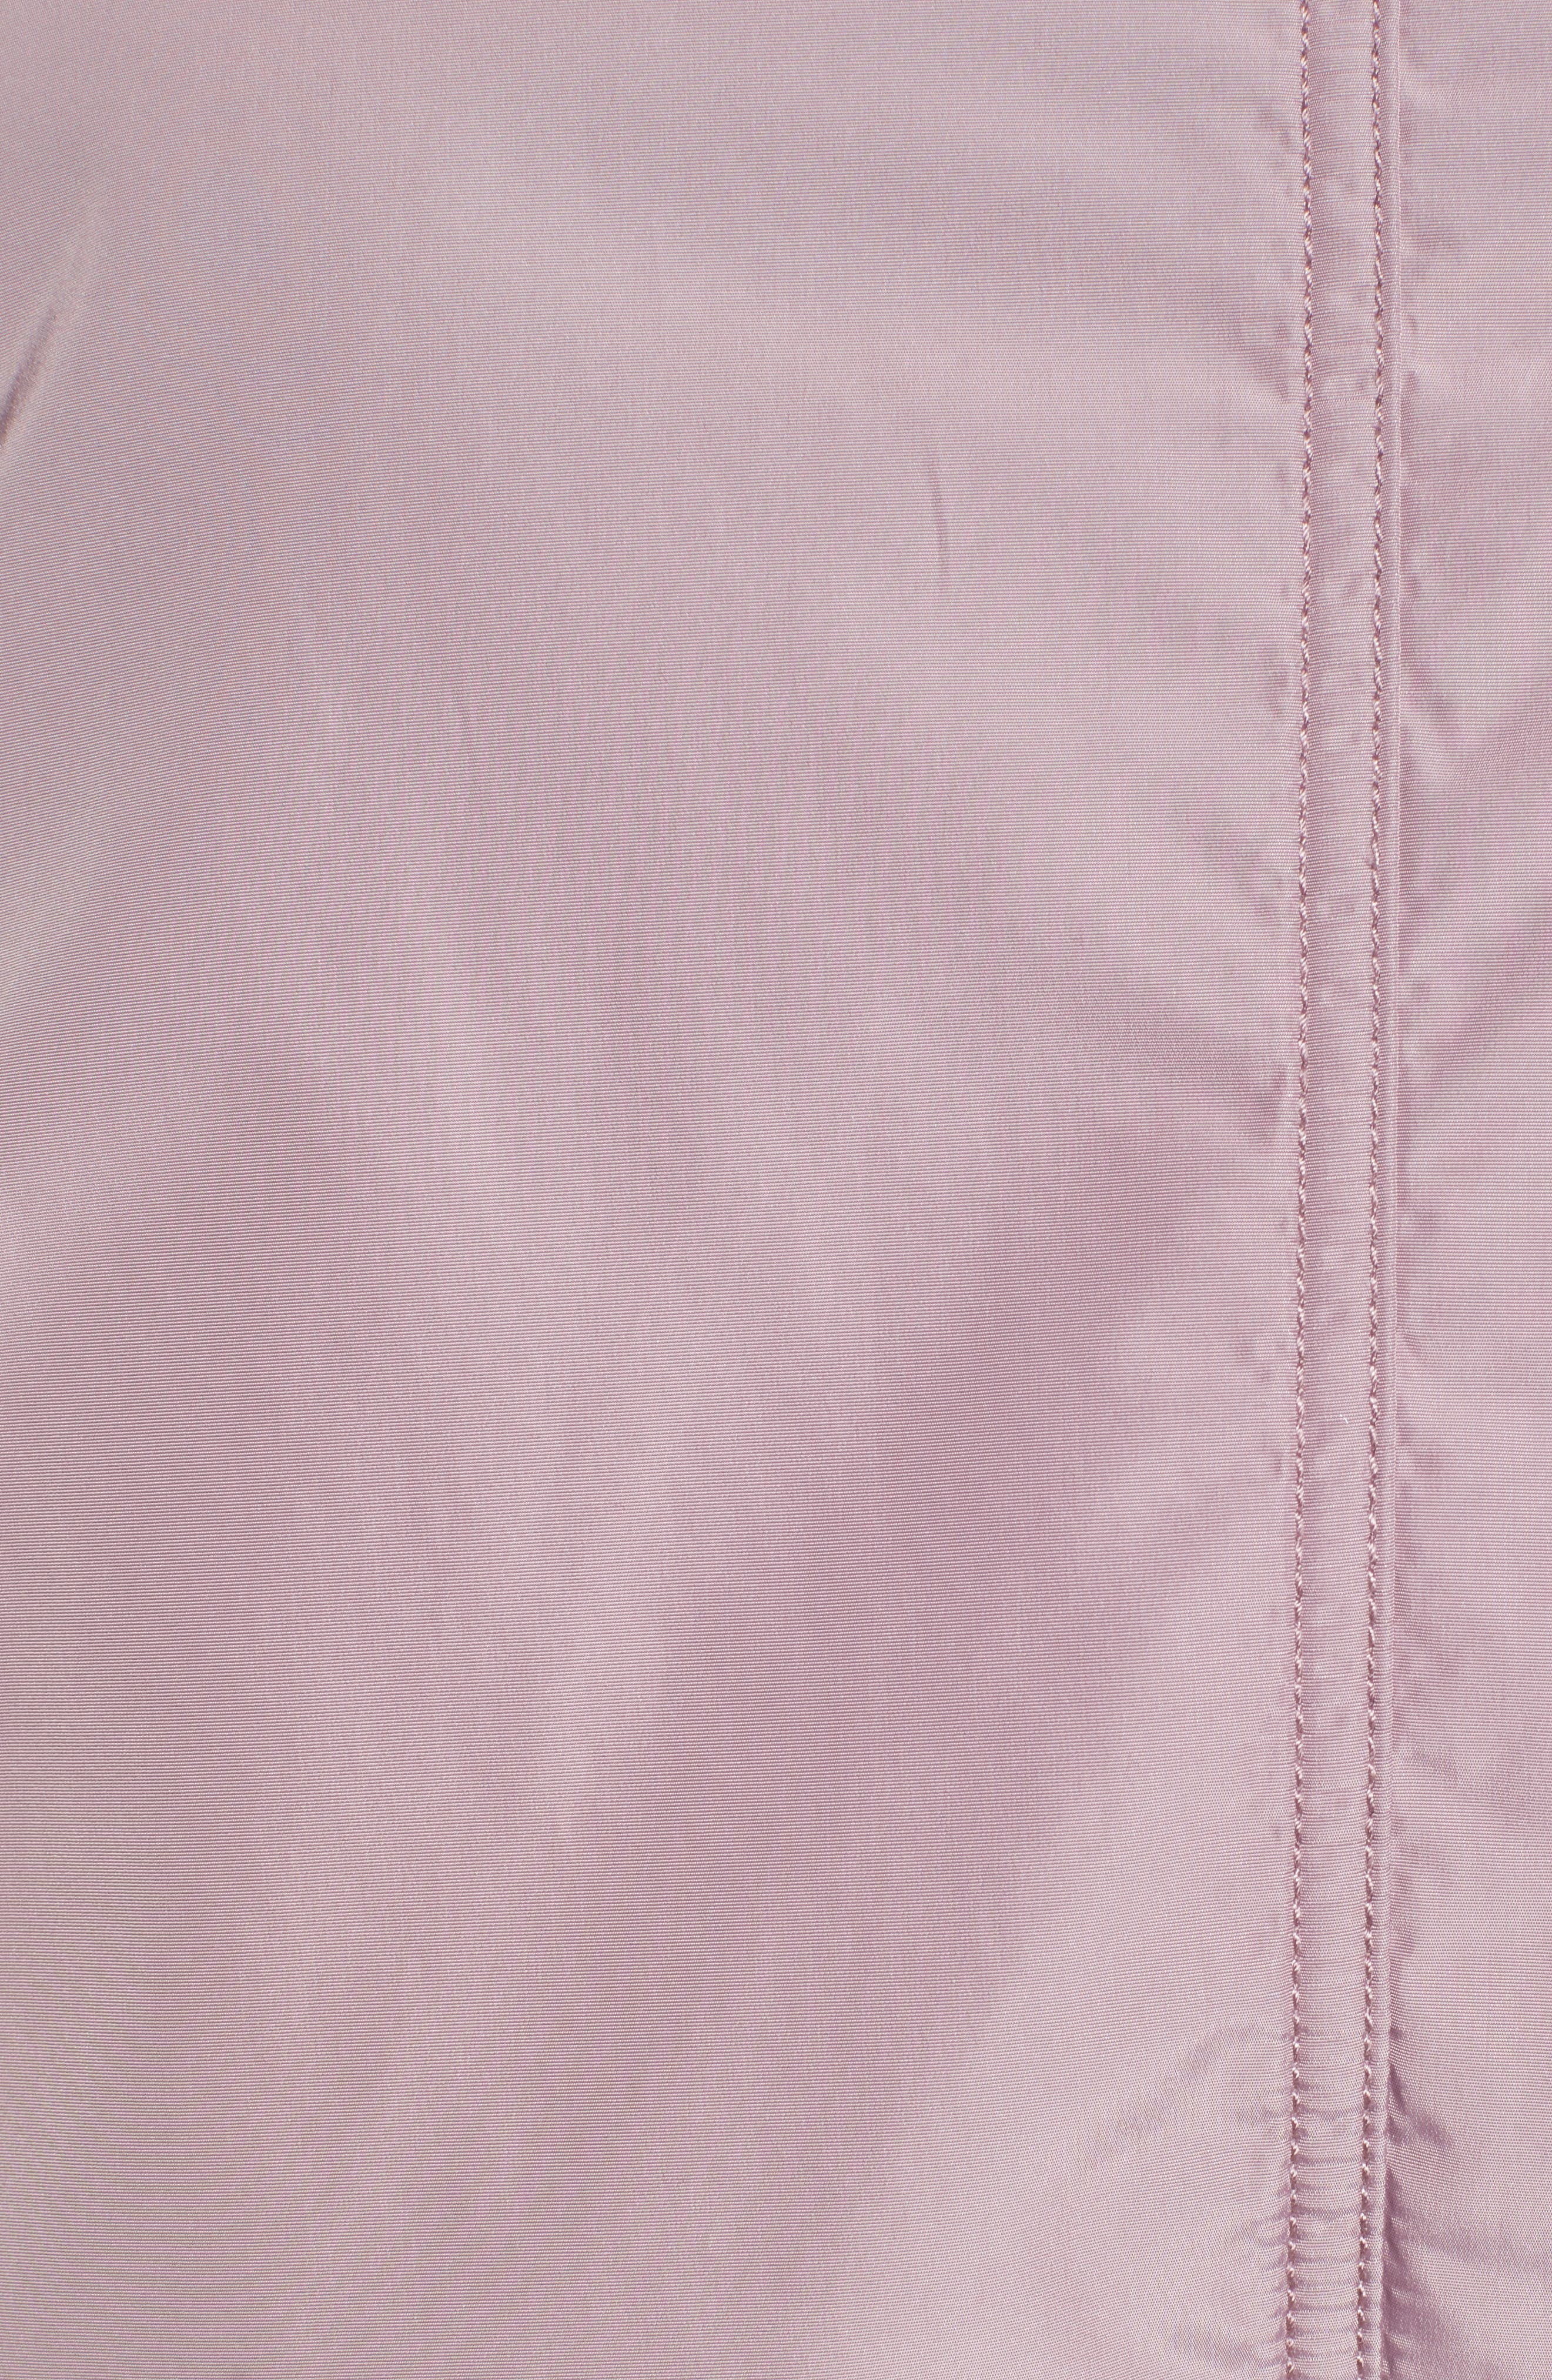 Foster Nylon Twill Bomber Jacket,                             Alternate thumbnail 21, color,